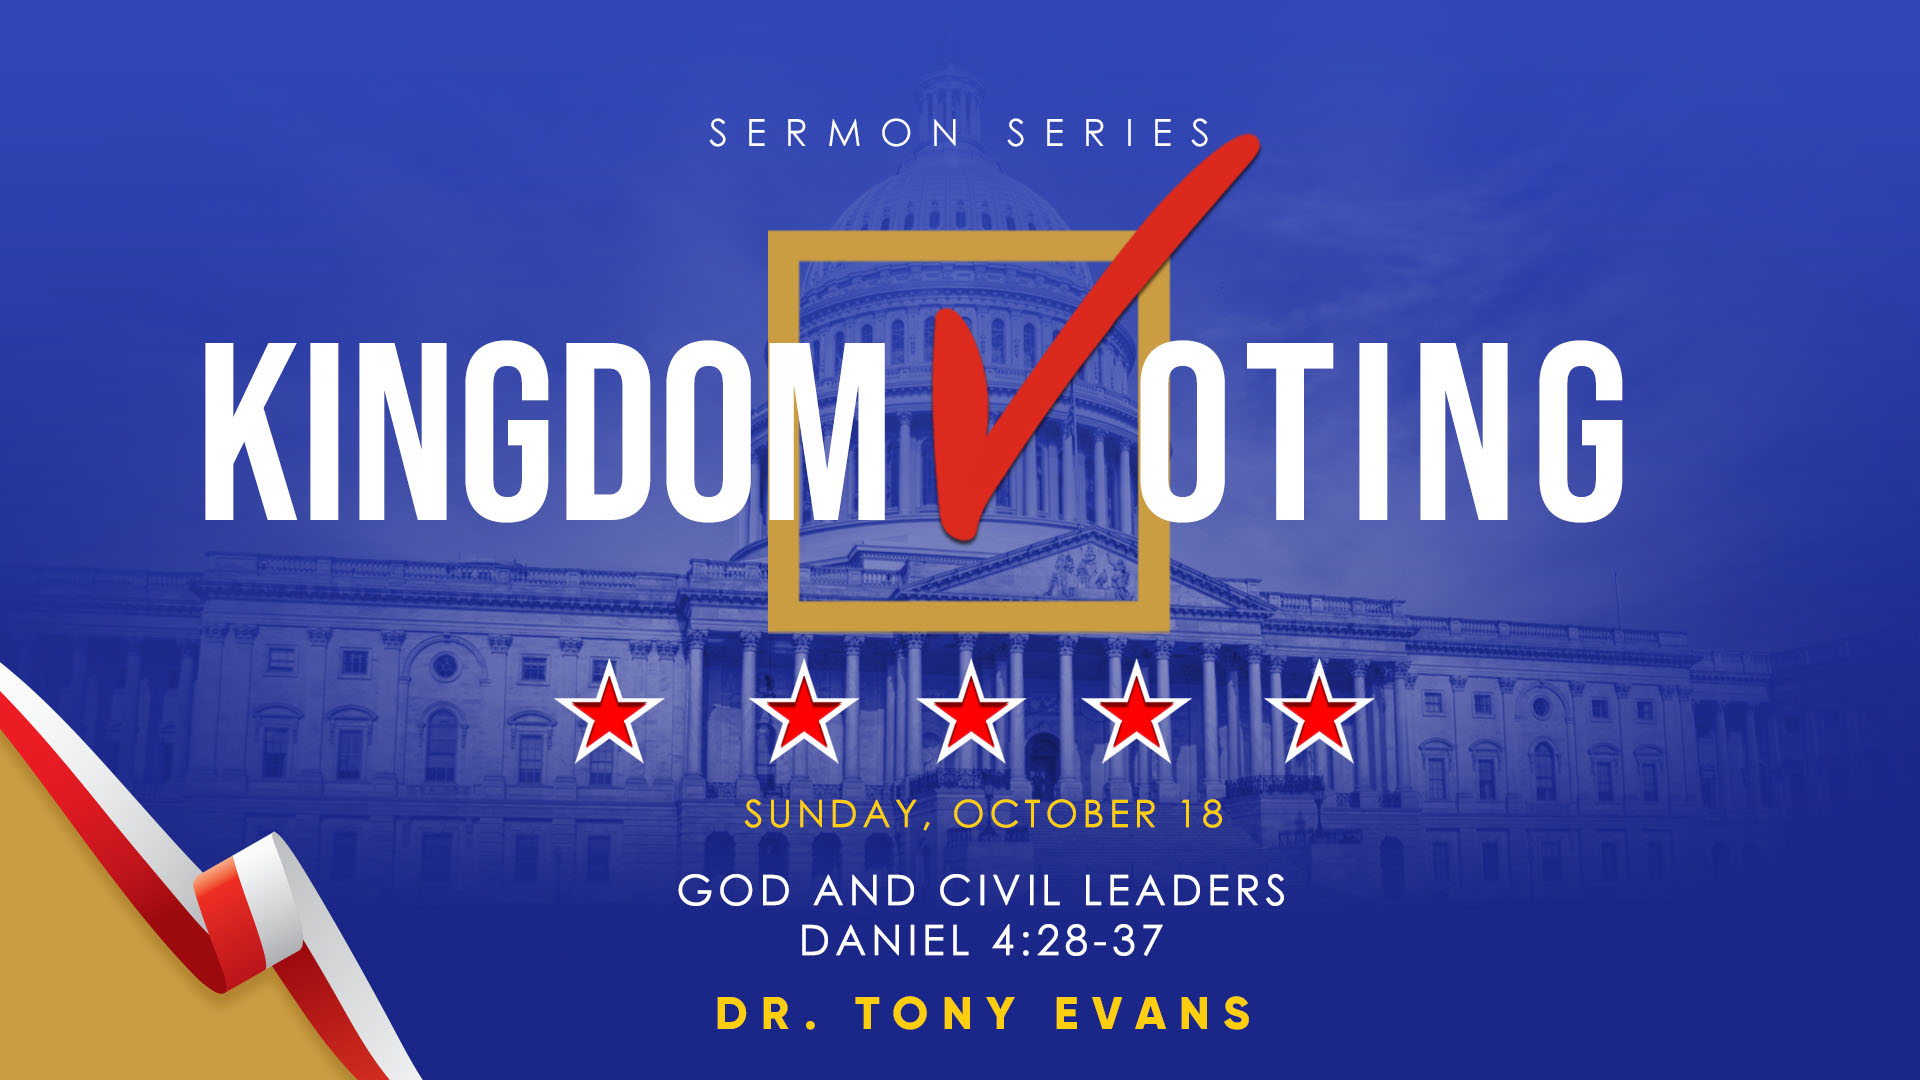 Kingdom Voting: God and Civil Leaders by Dr. Tony Evans